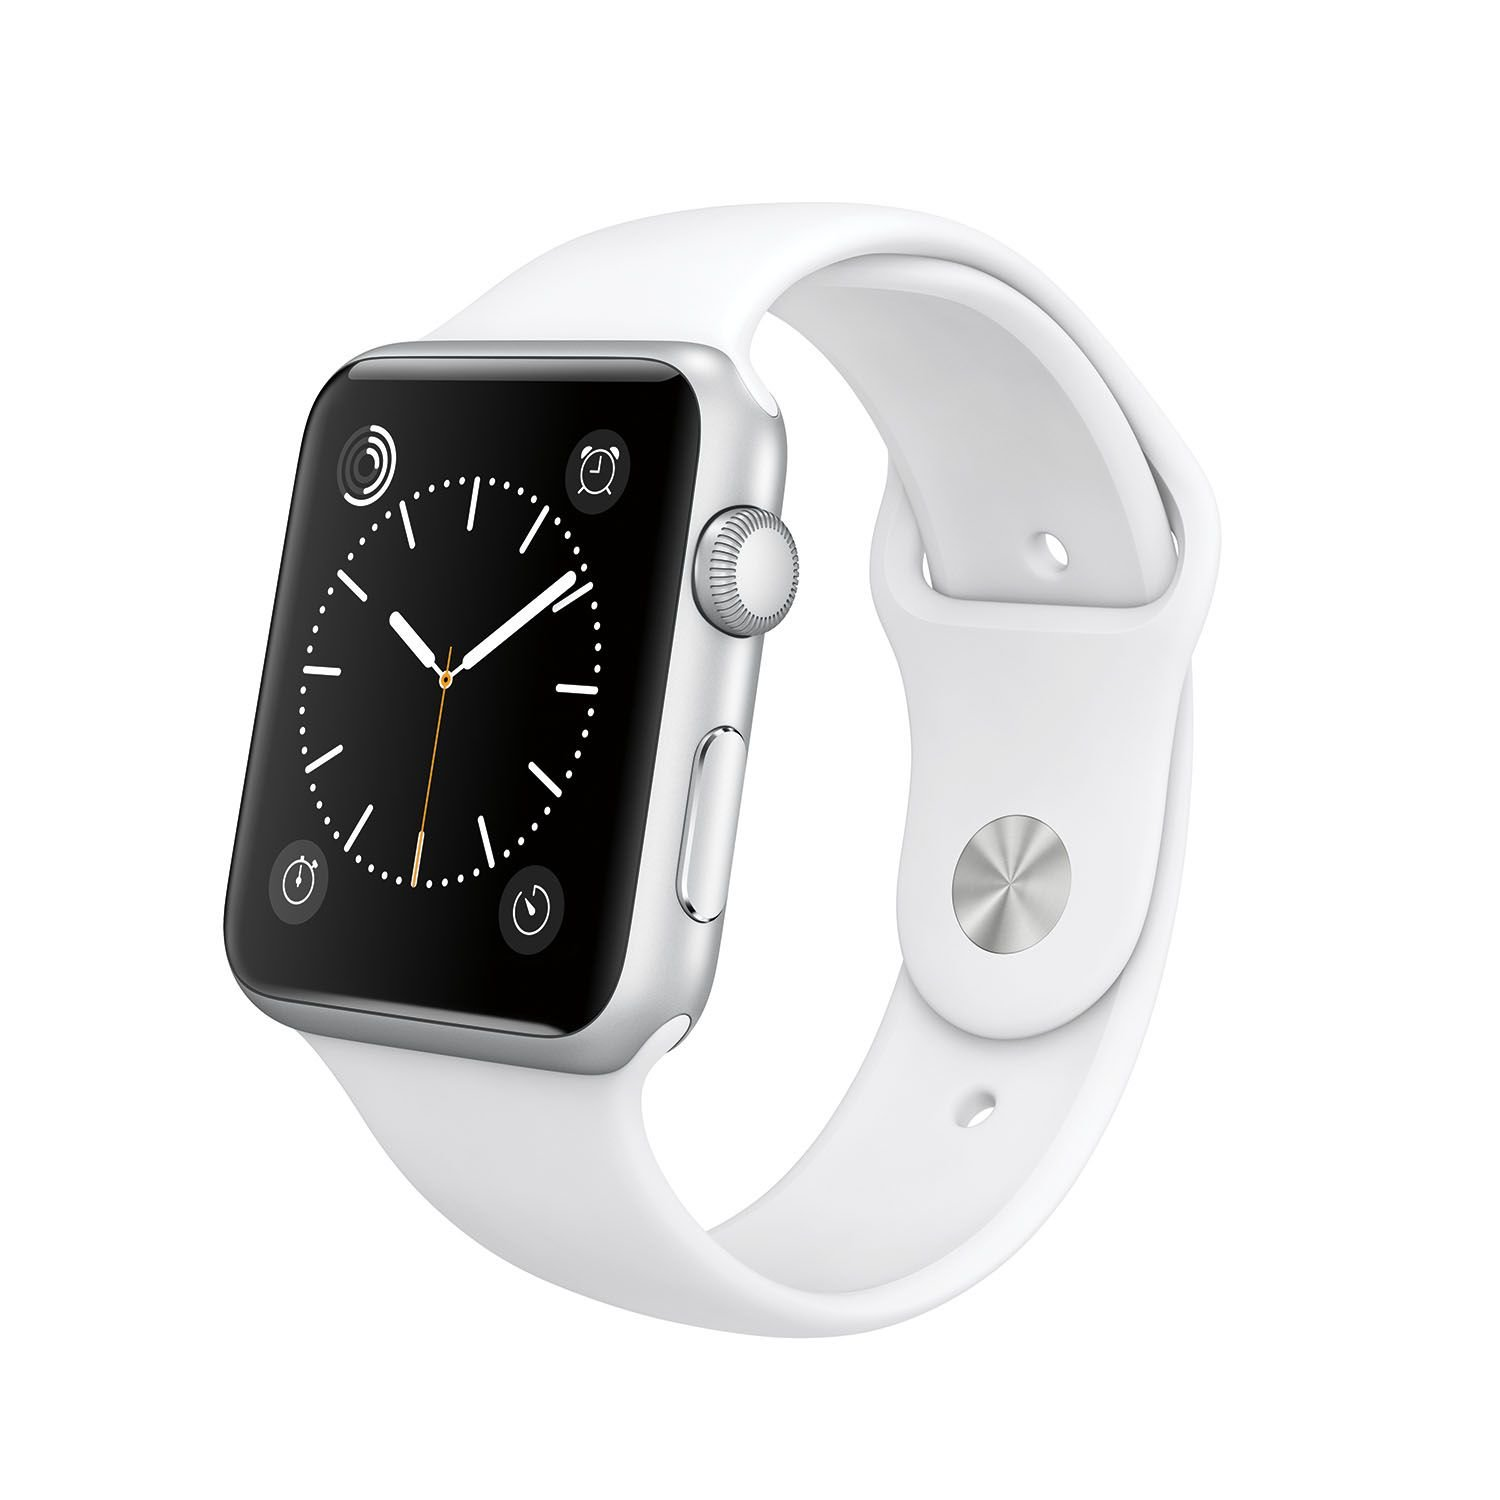 Original Apple Watch 42mm (fits 5.5'' - 8.2'' wrists) - Silver Aluminum Case, White Sport Band Edition (Retail Packaging)